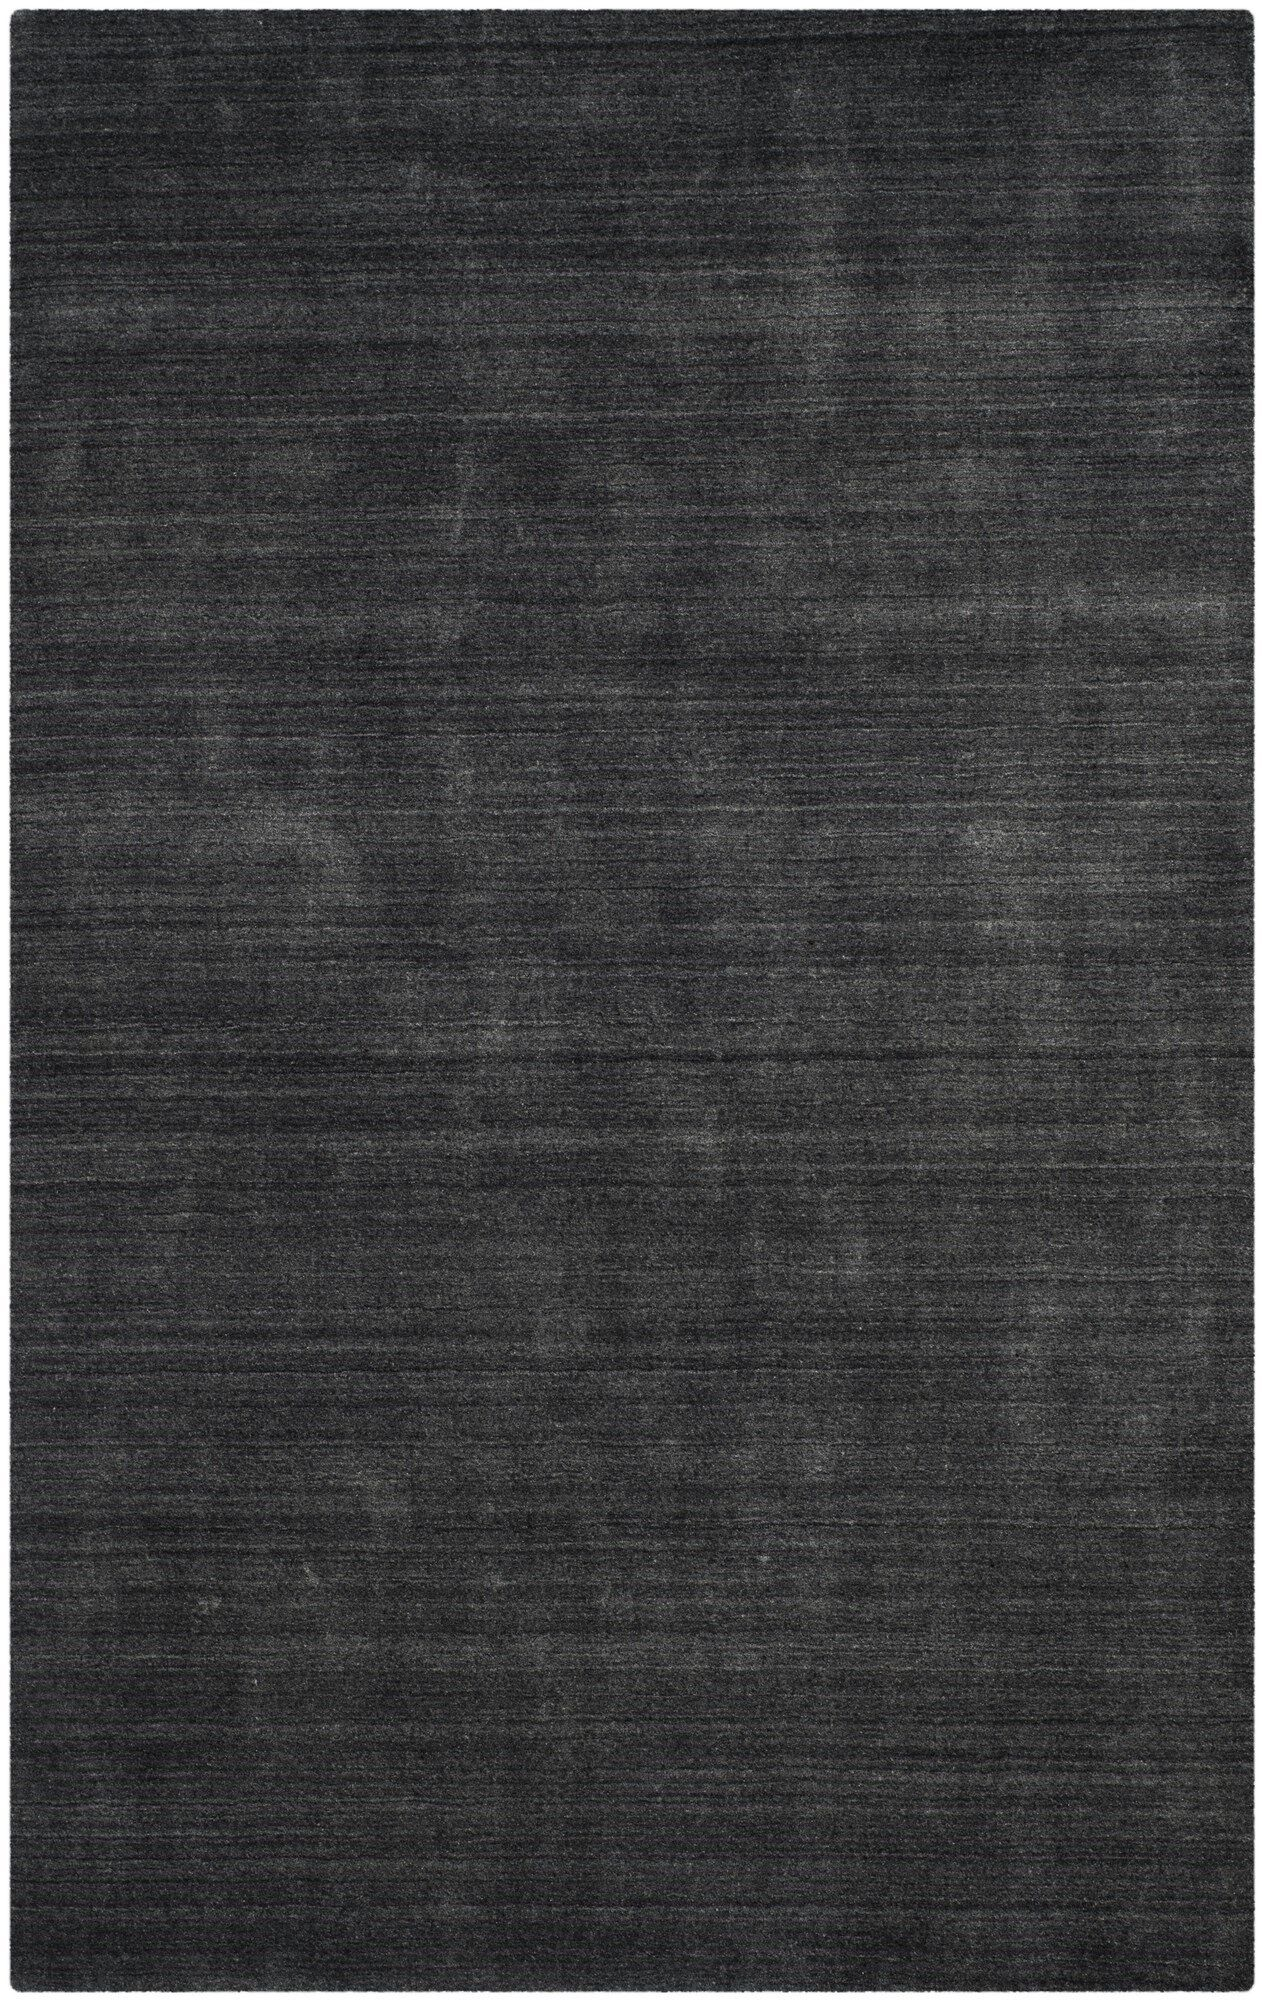 Leontine Hand-Loomed Charcoal Area Rug Rug Size: Rectangle 9' x 12'